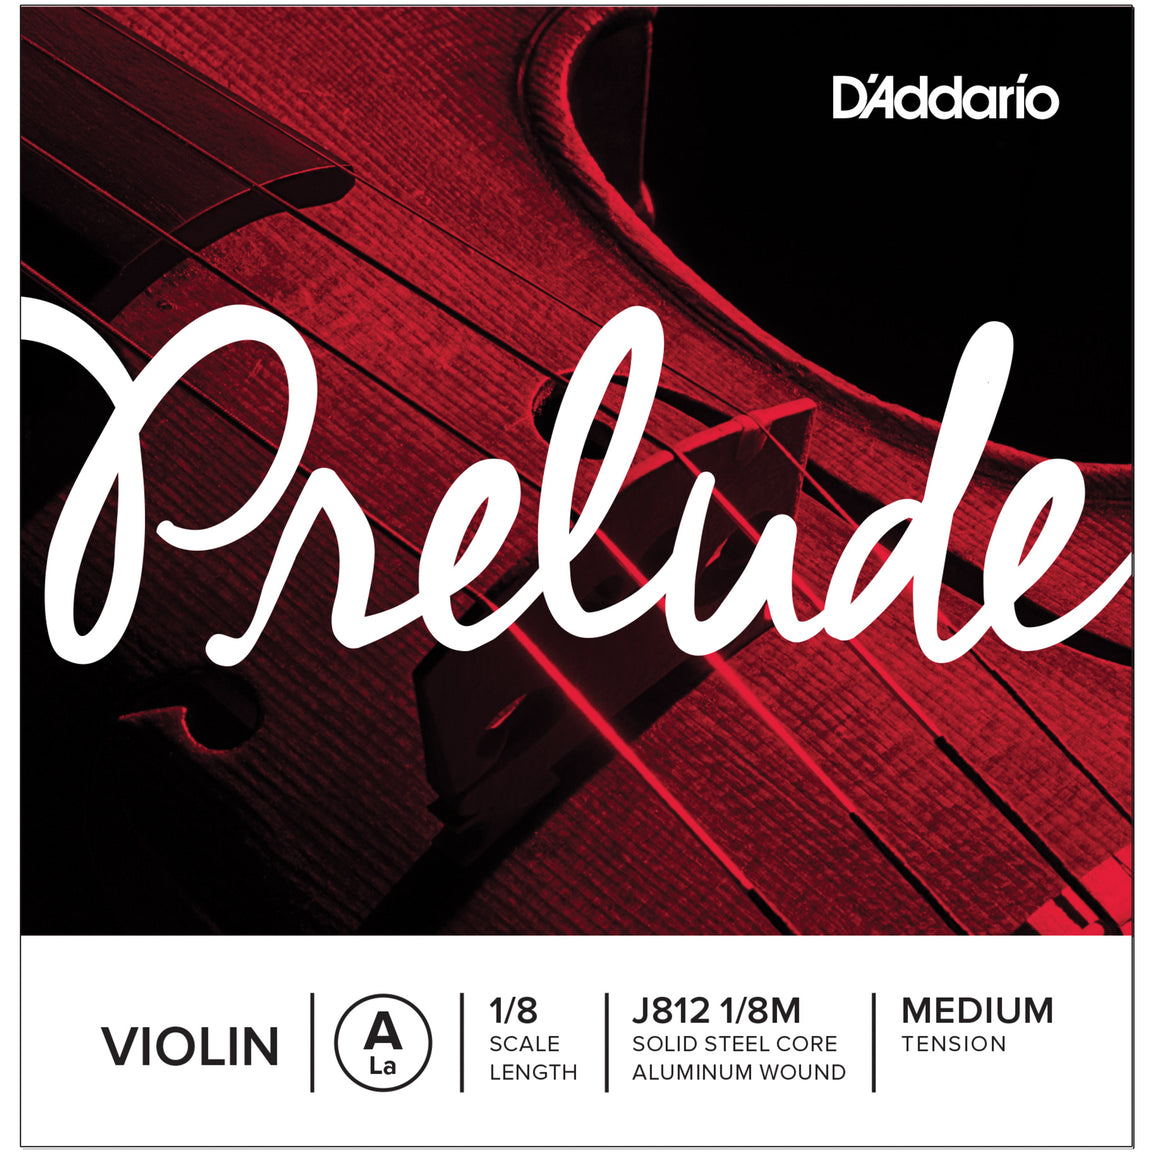 D'addario Prelude 1/8 A Violin Single String Medium J812